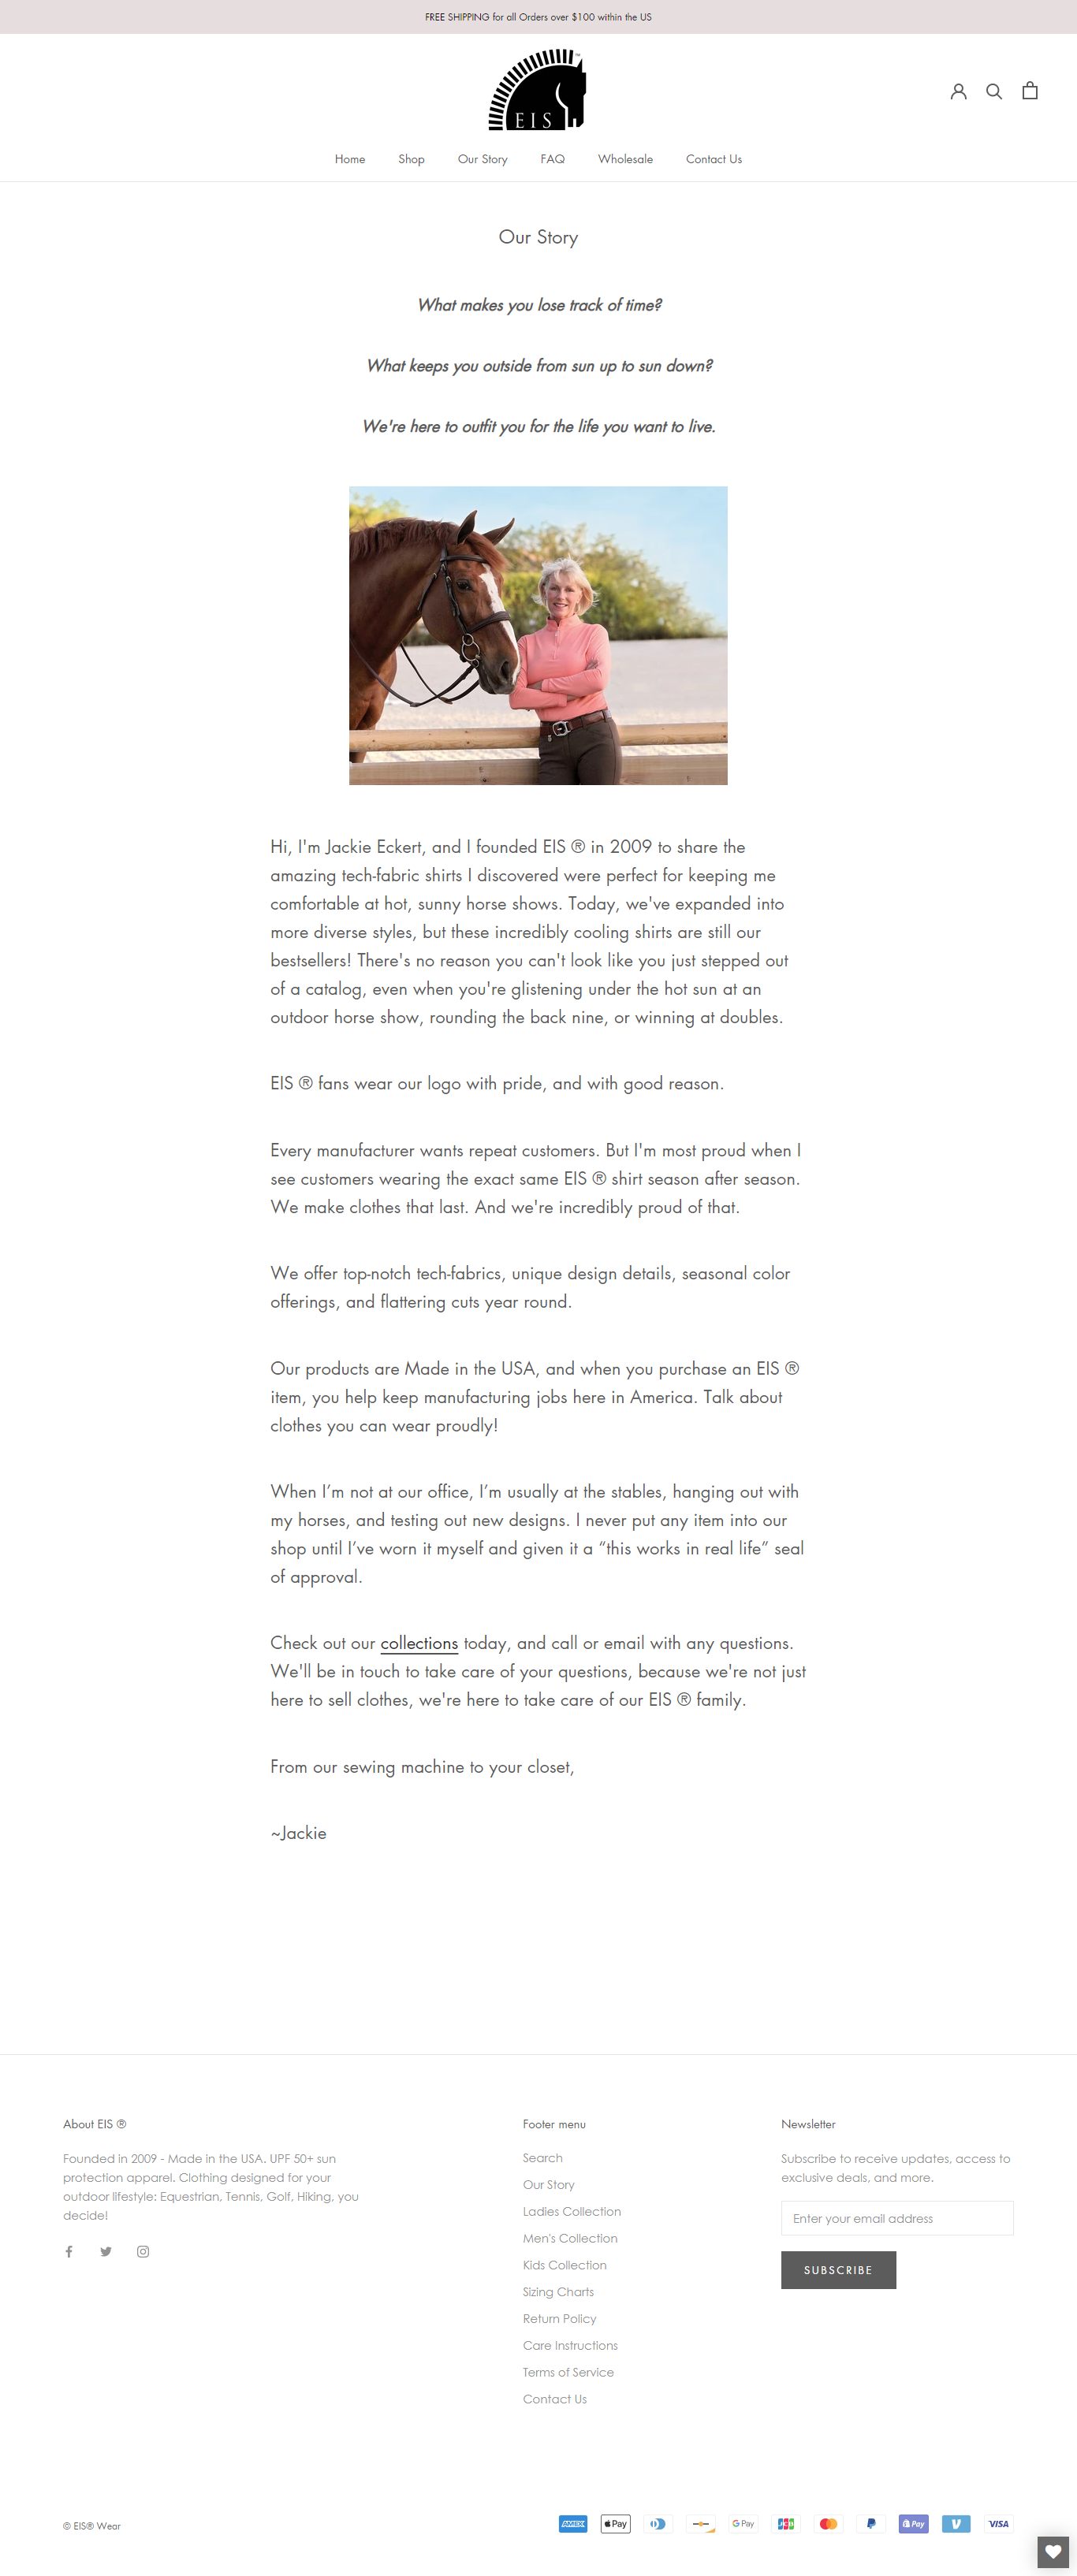 screencapture-eis-wear-pages-our-story-2019-09-07-16_07_54.png